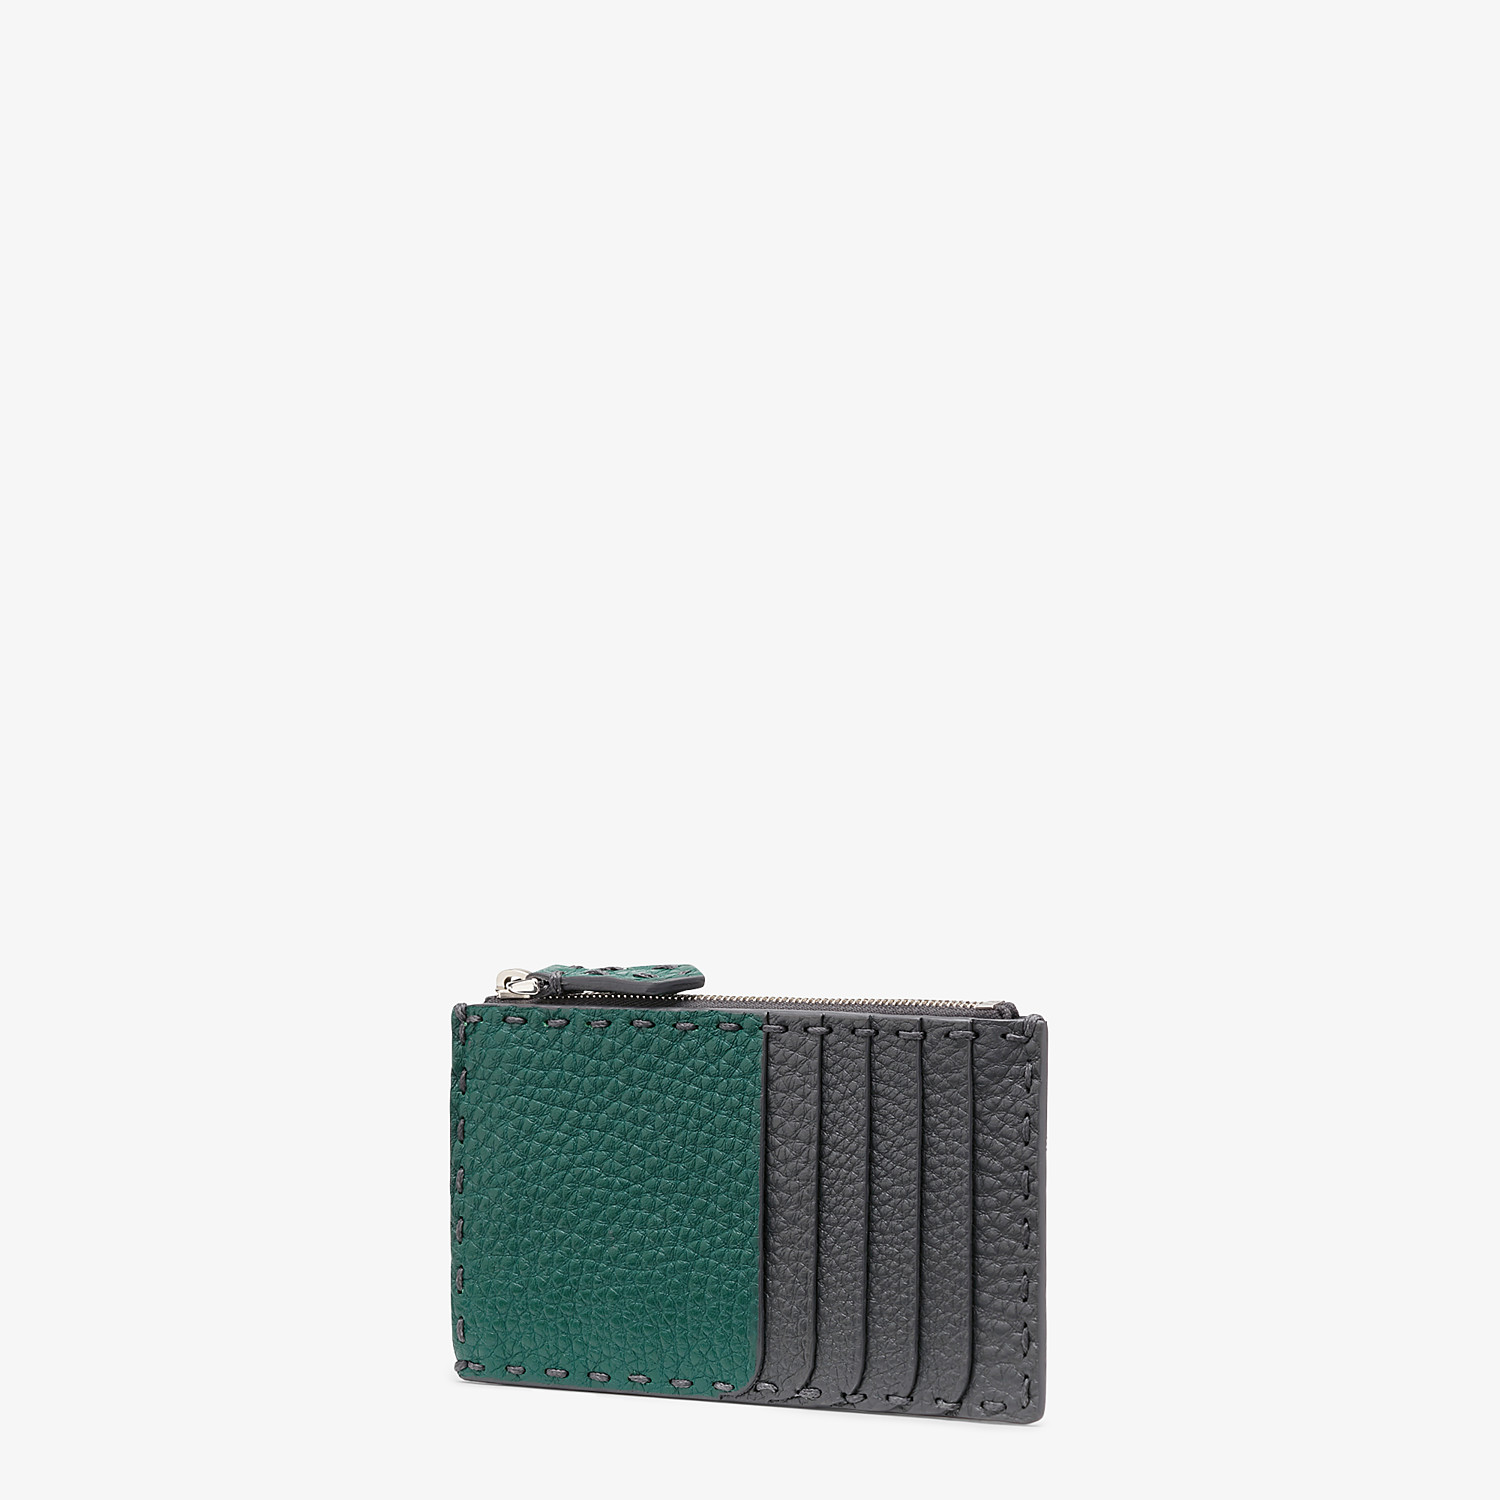 FENDI CARD HOLDER - Multicolor leather coin purse - view 2 detail